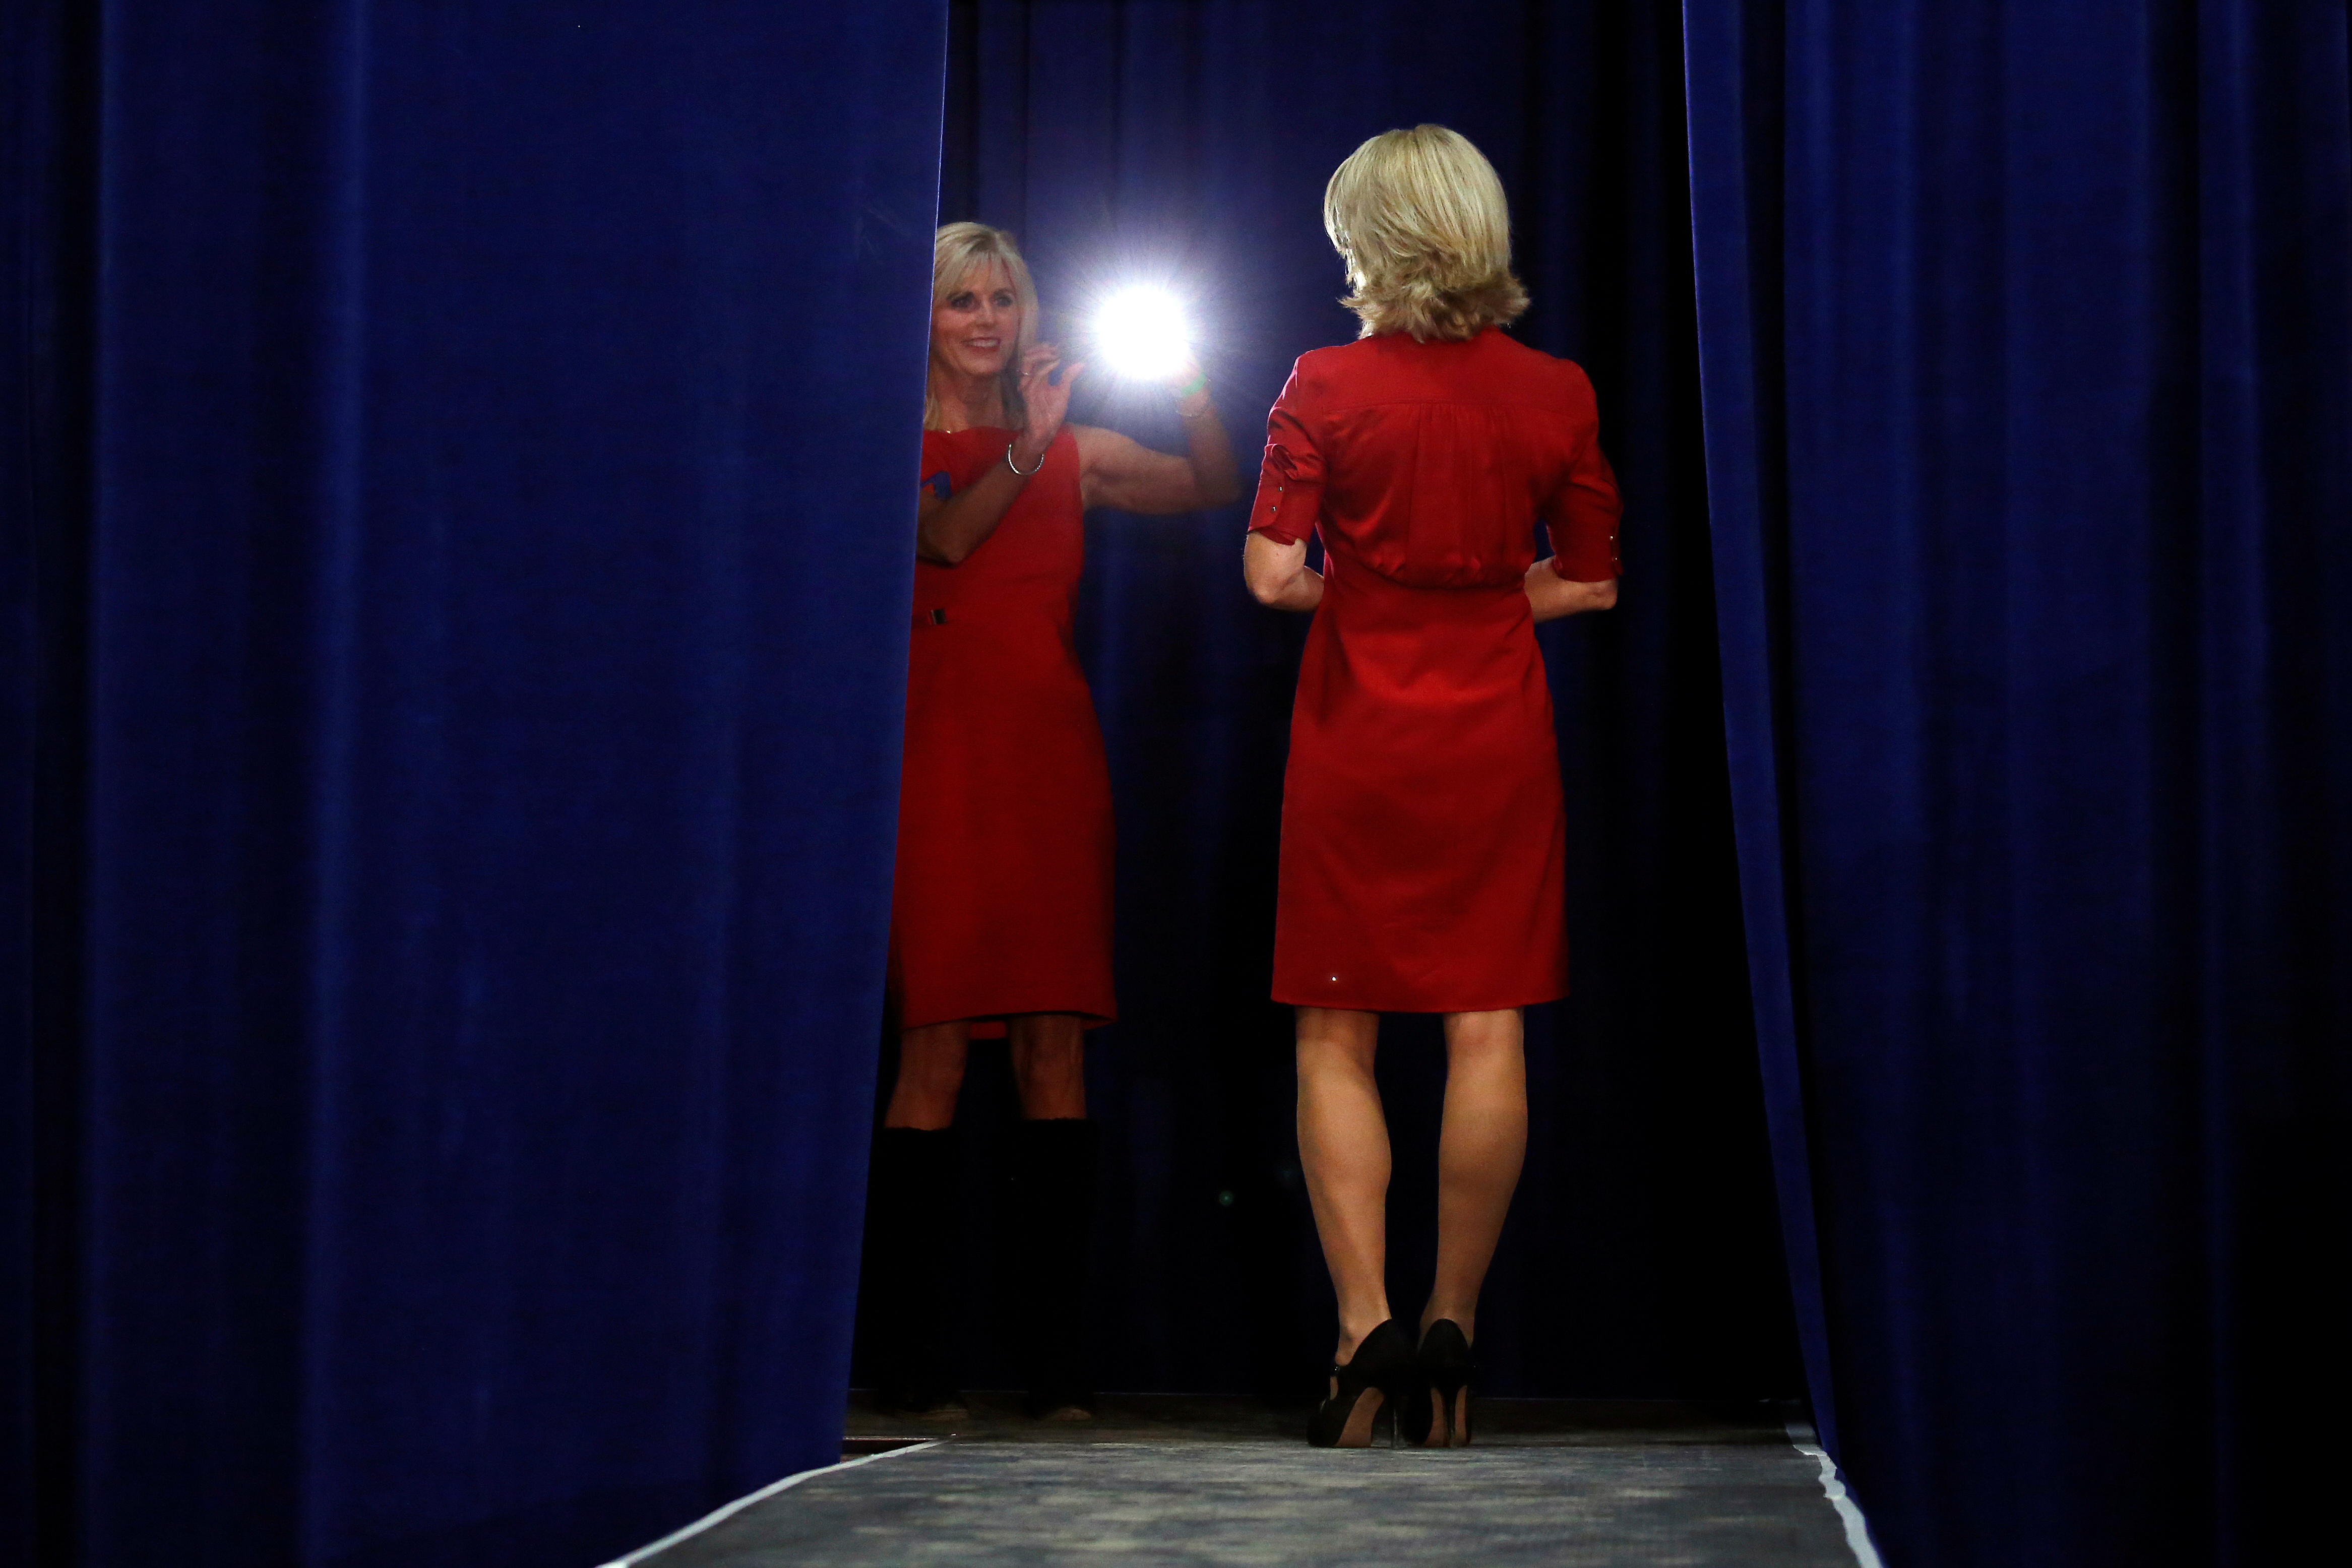 Two women take pictures on stage before Donald Trump speaks at a campaign event in Springfield, Ohio, on Oct. 27, 2016.